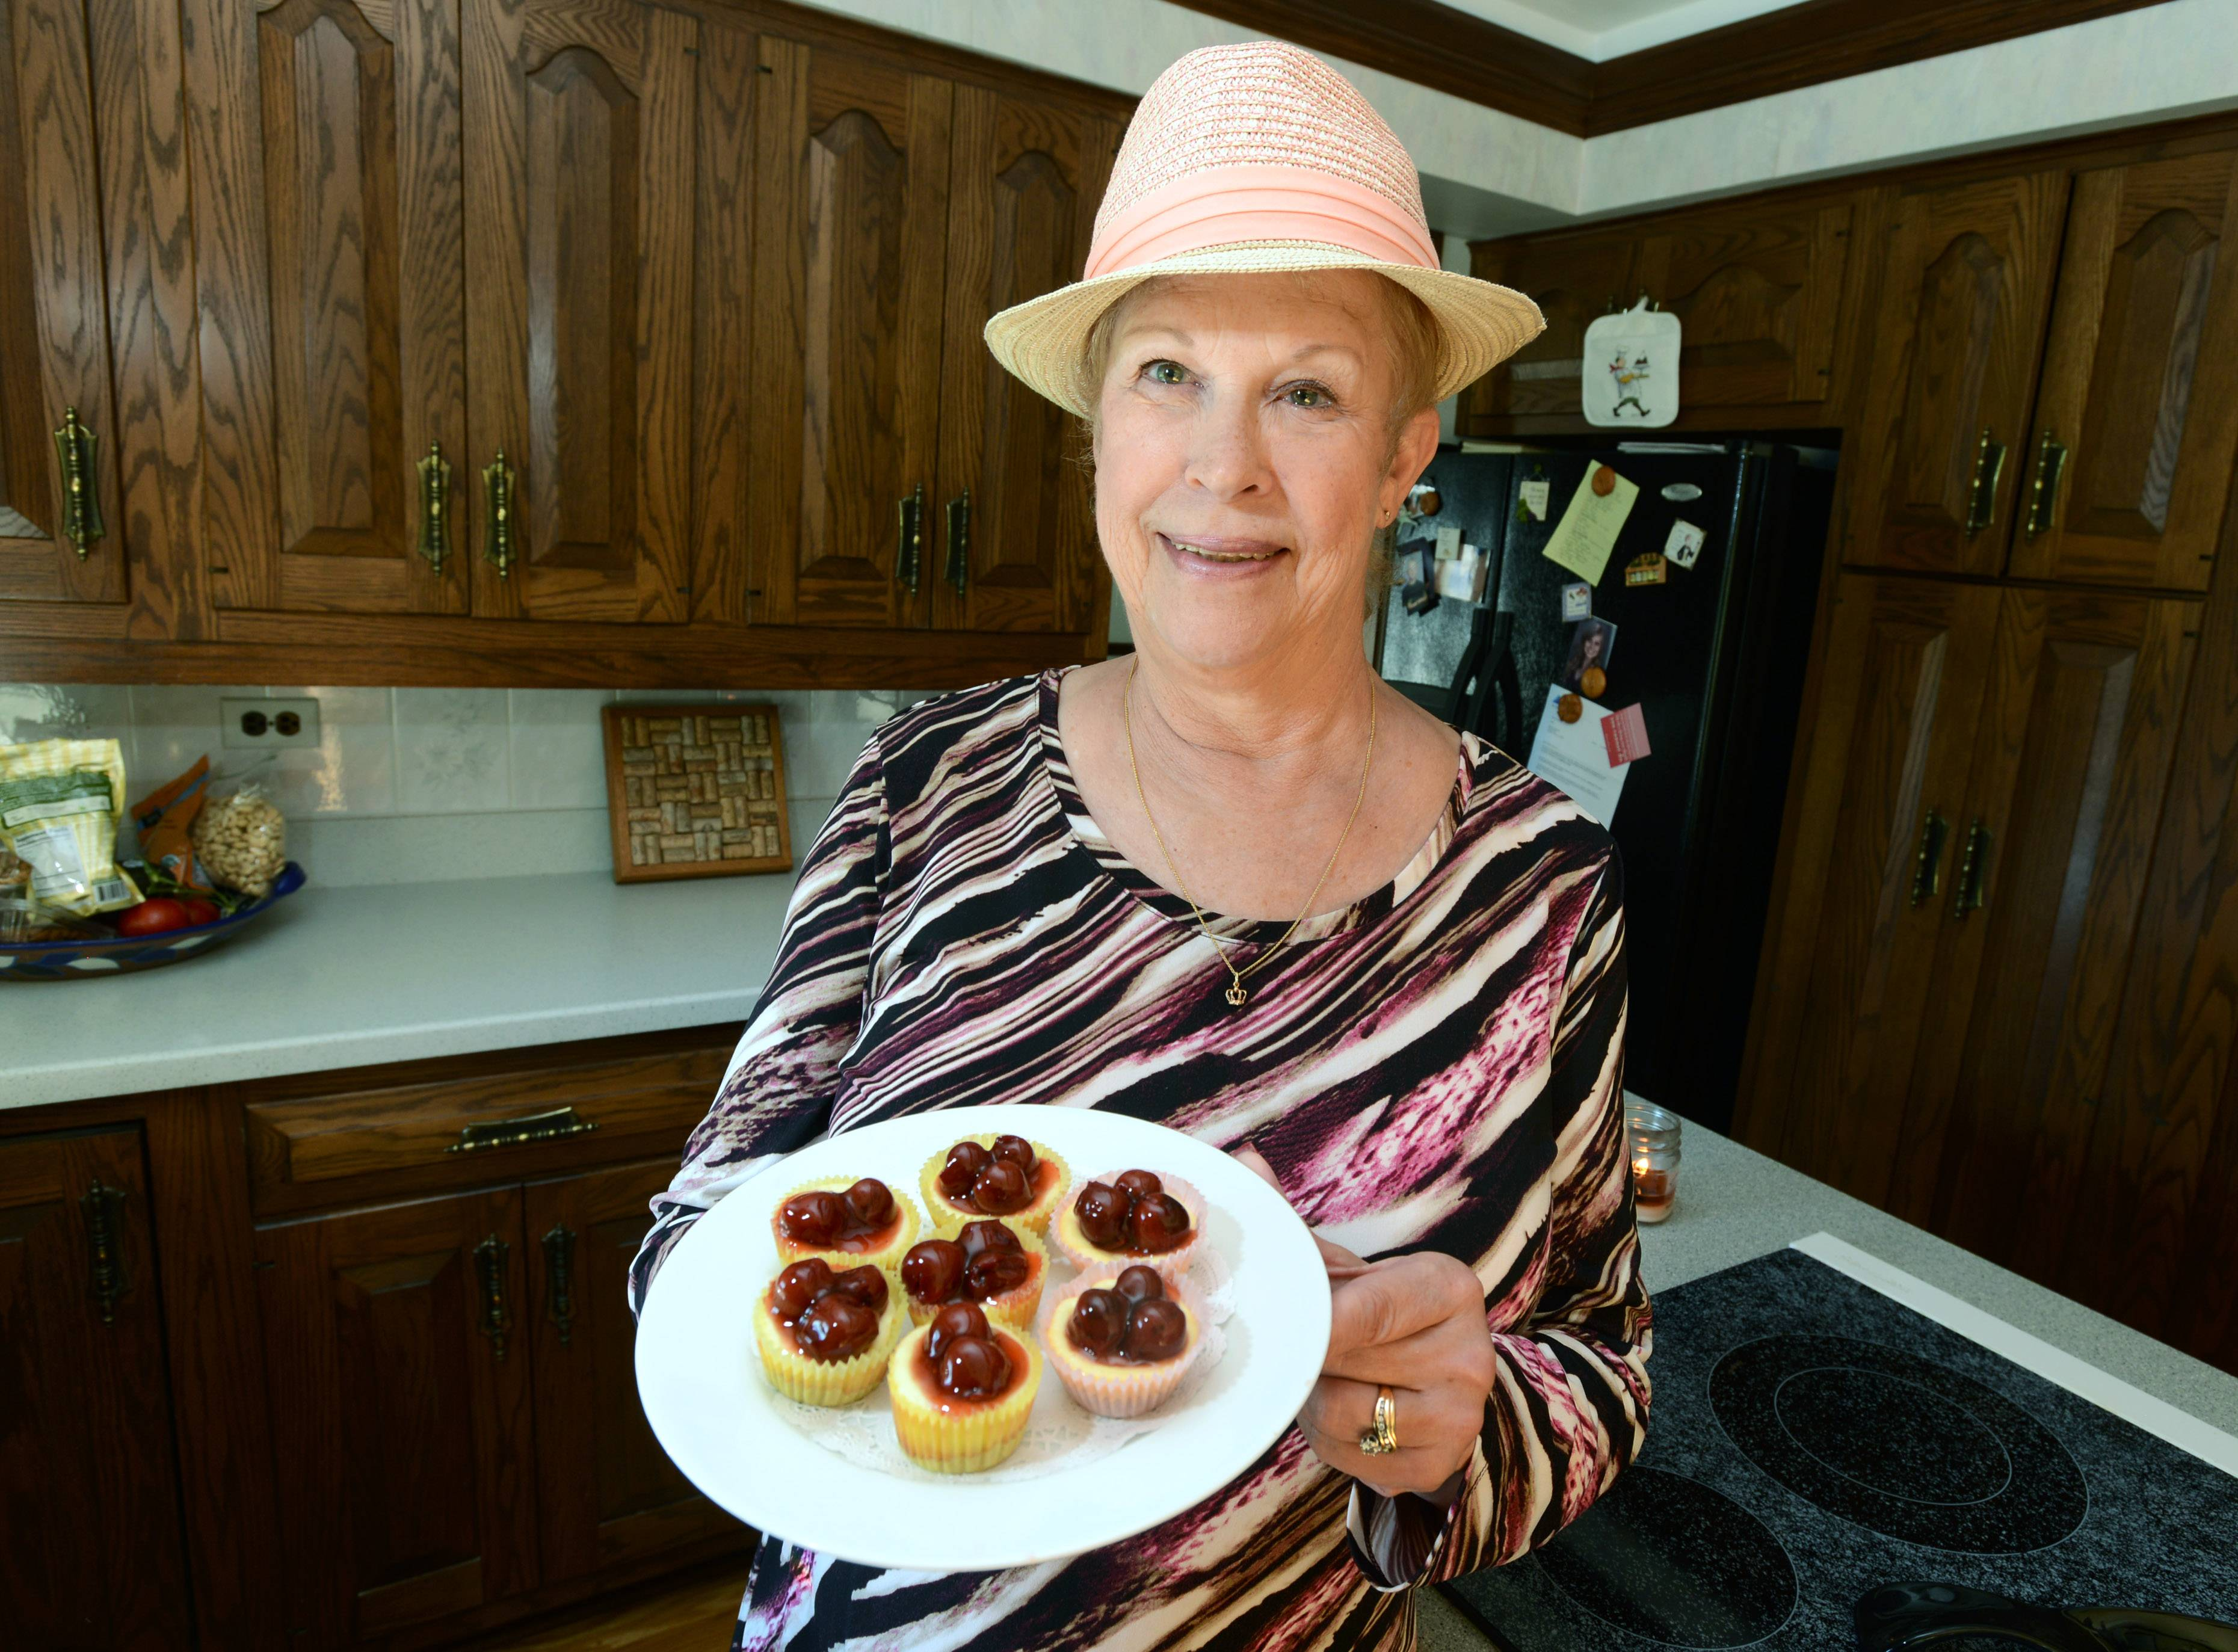 Mini cherry cheesecakes she calls Jen's Jems are just one of J'Ann Tharnstrom specialties.